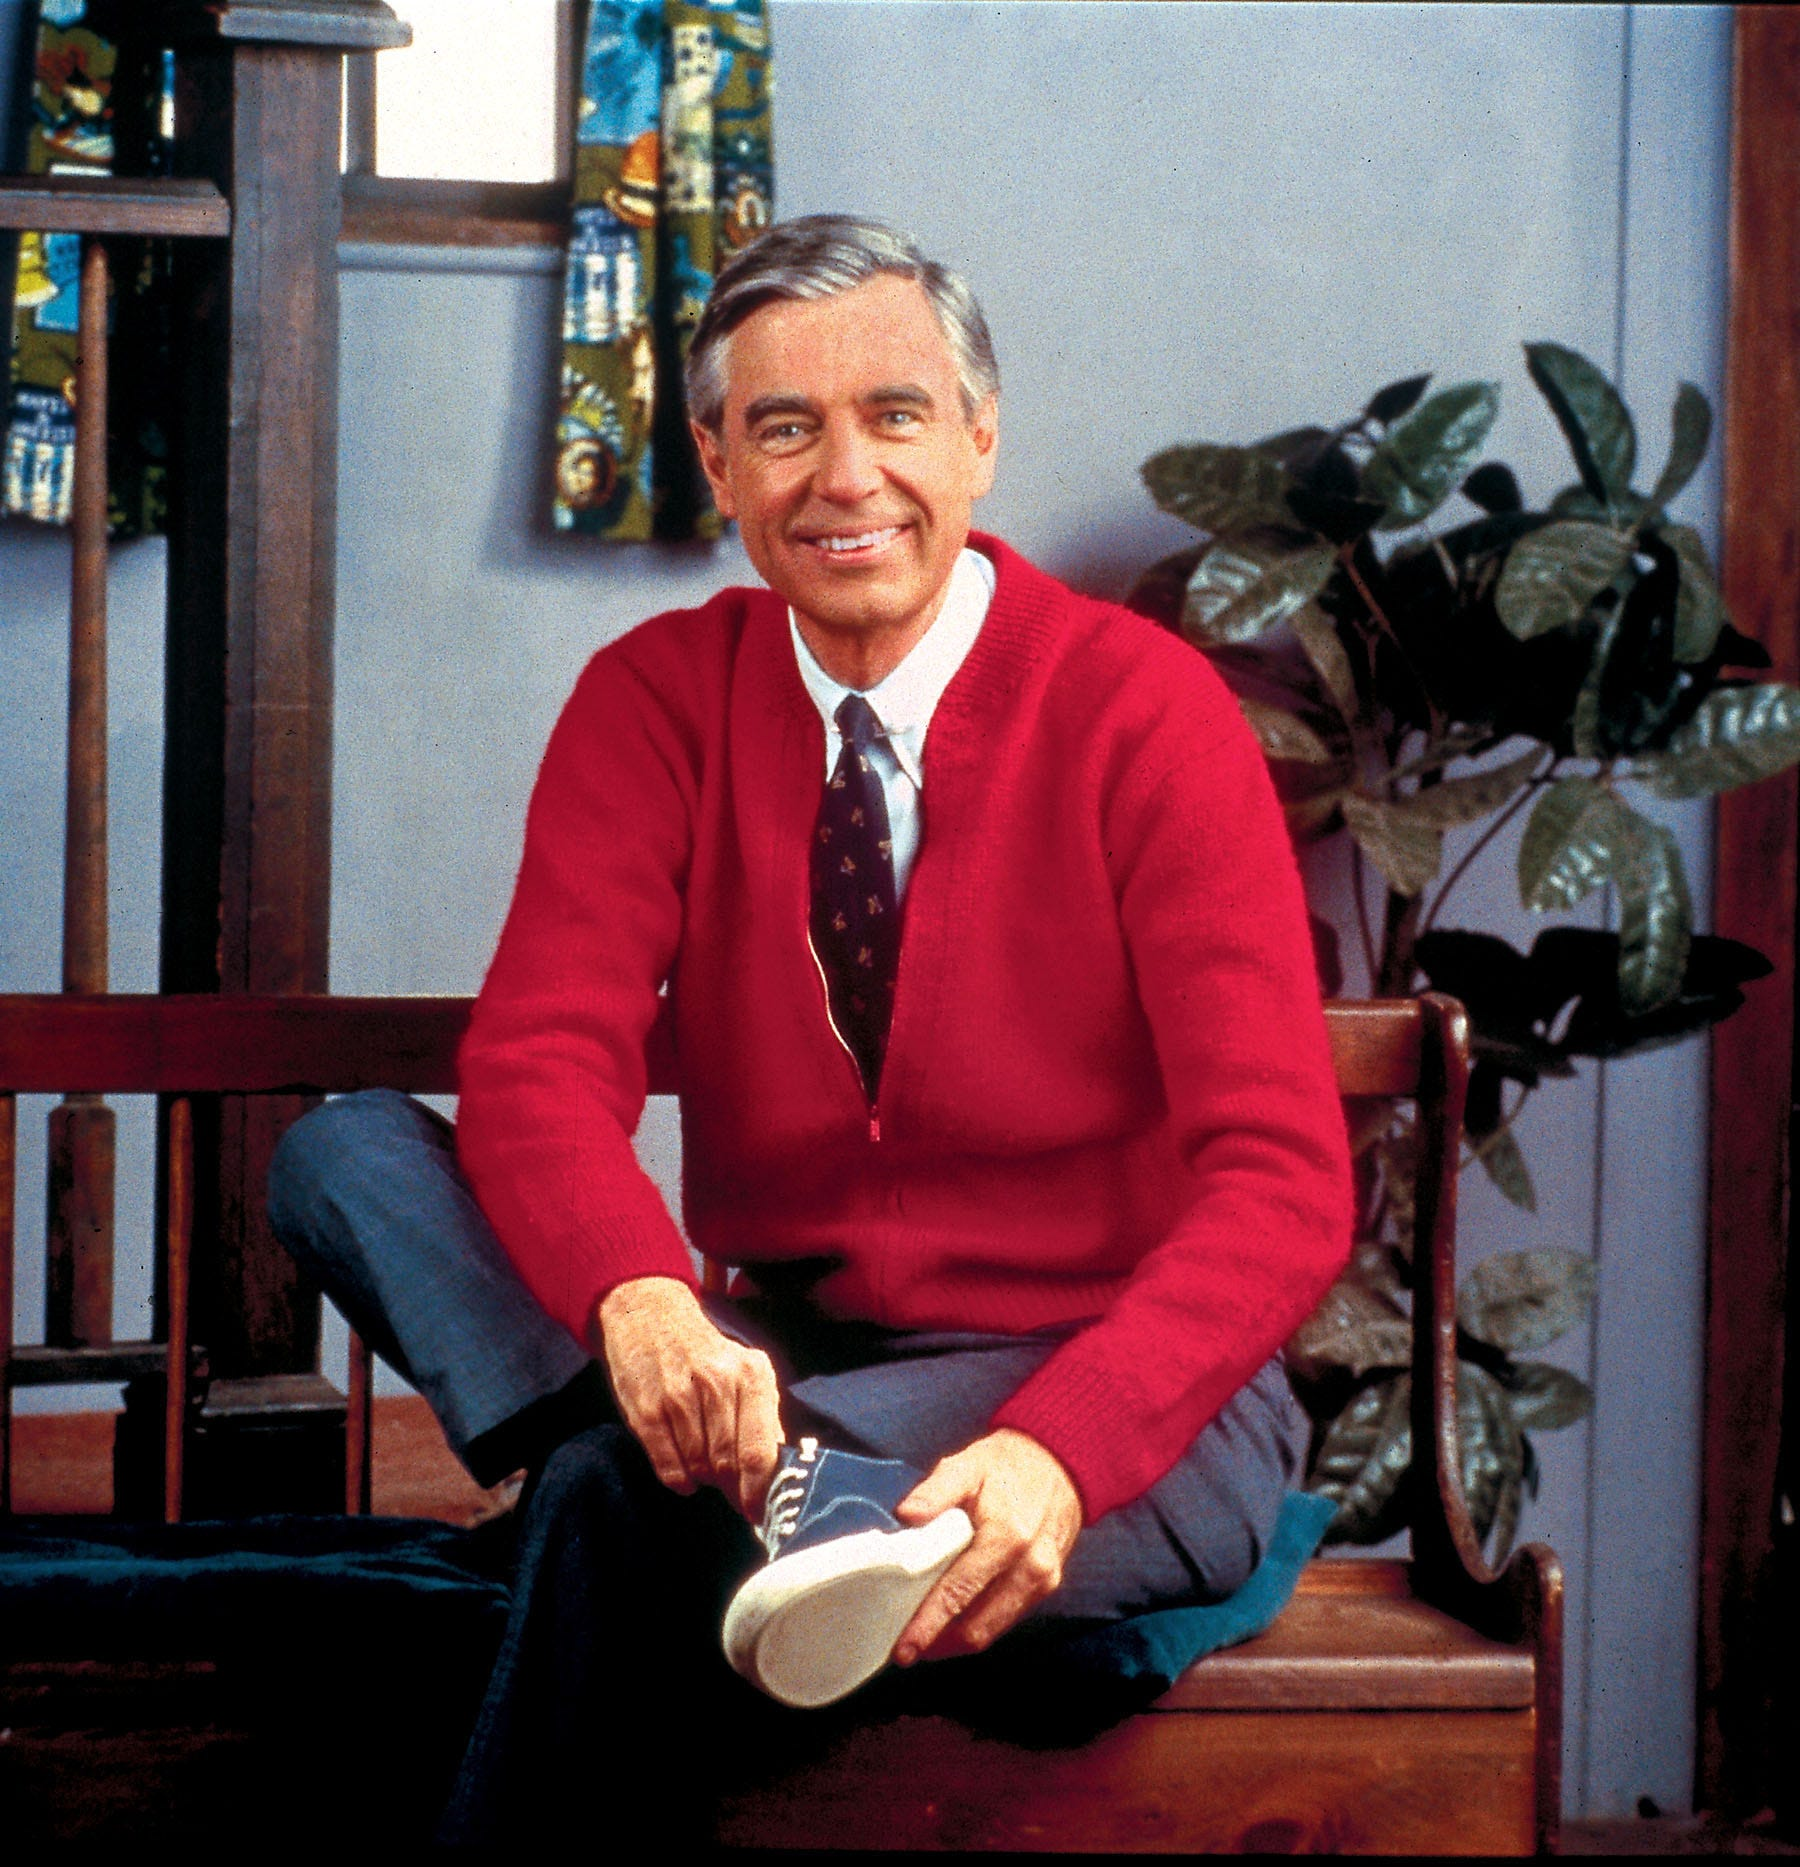 Fred Rogers What Did You Learn From Mr Rogers Let Us Know